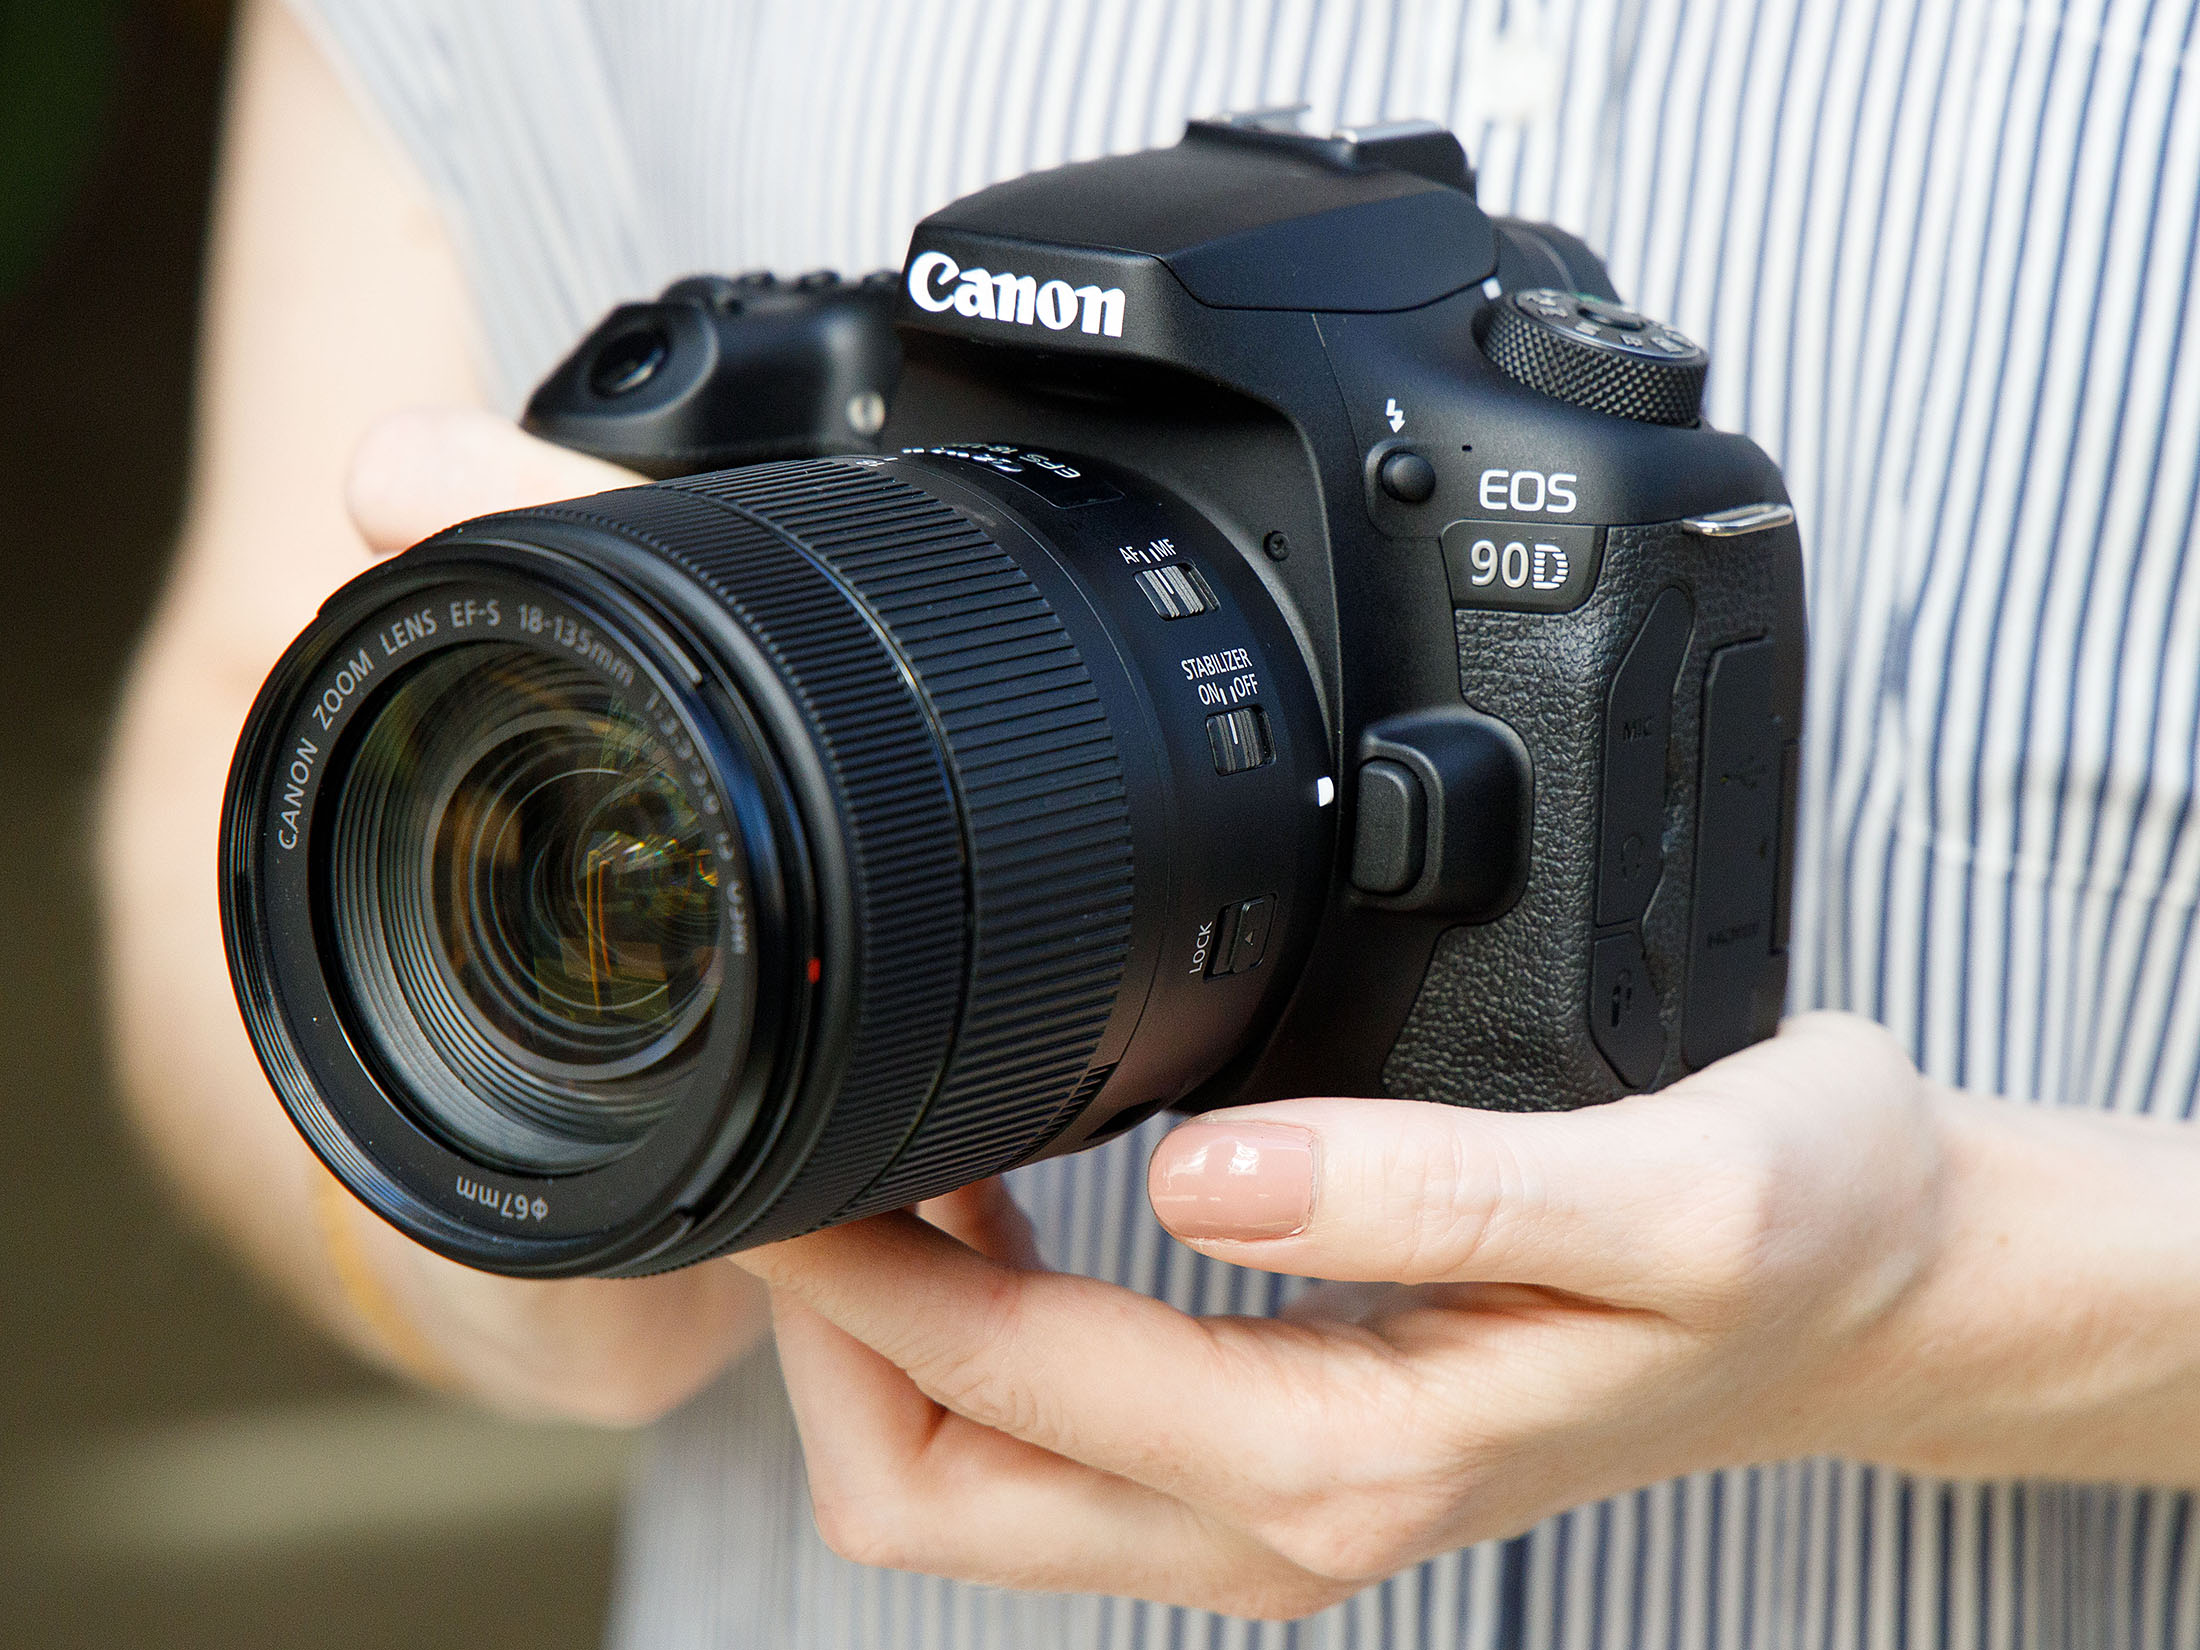 90d front angled